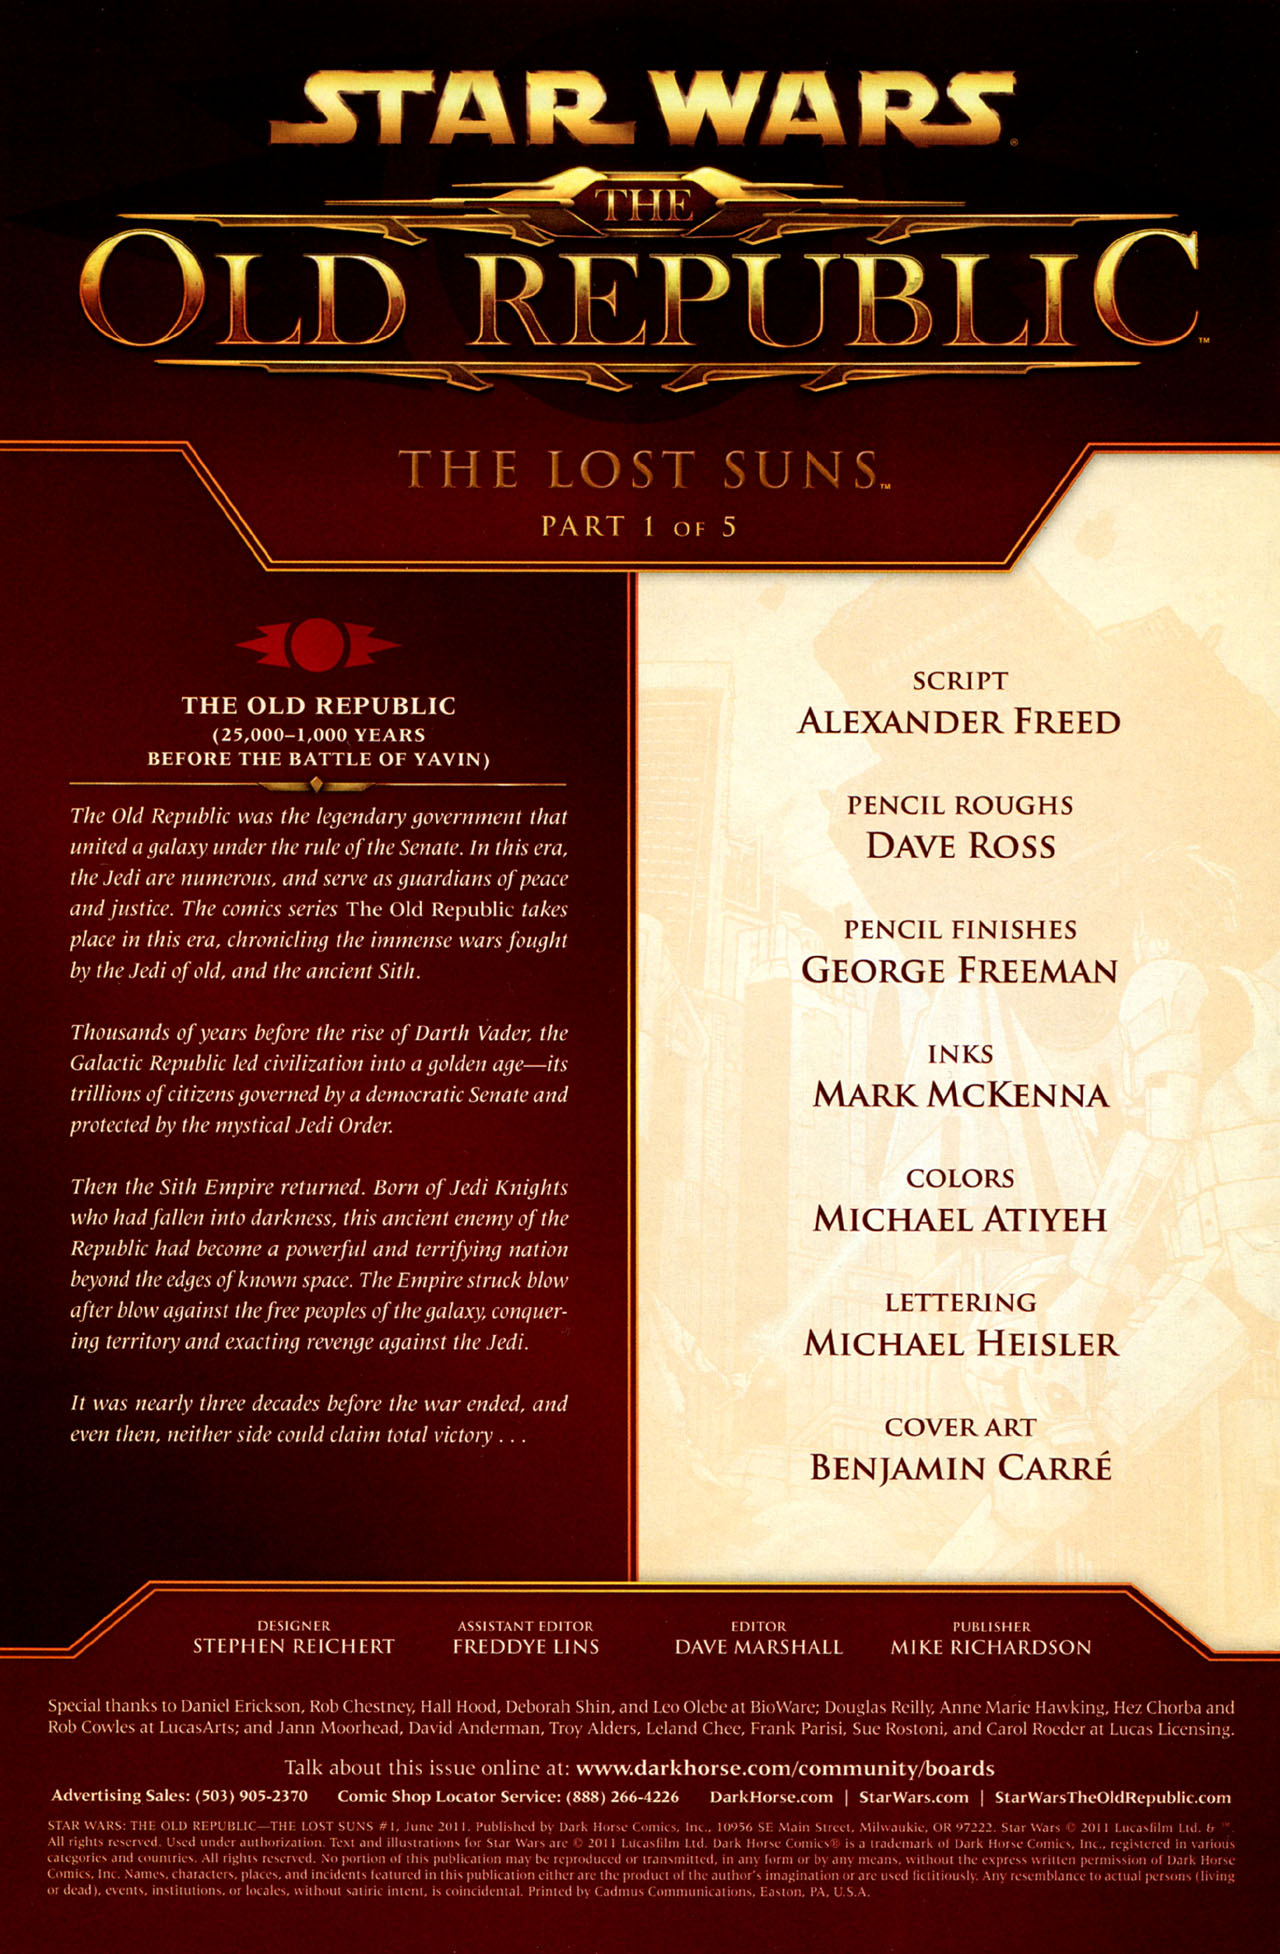 Read online Star Wars: The Old Republic - The Lost Suns comic -  Issue #1 - 2